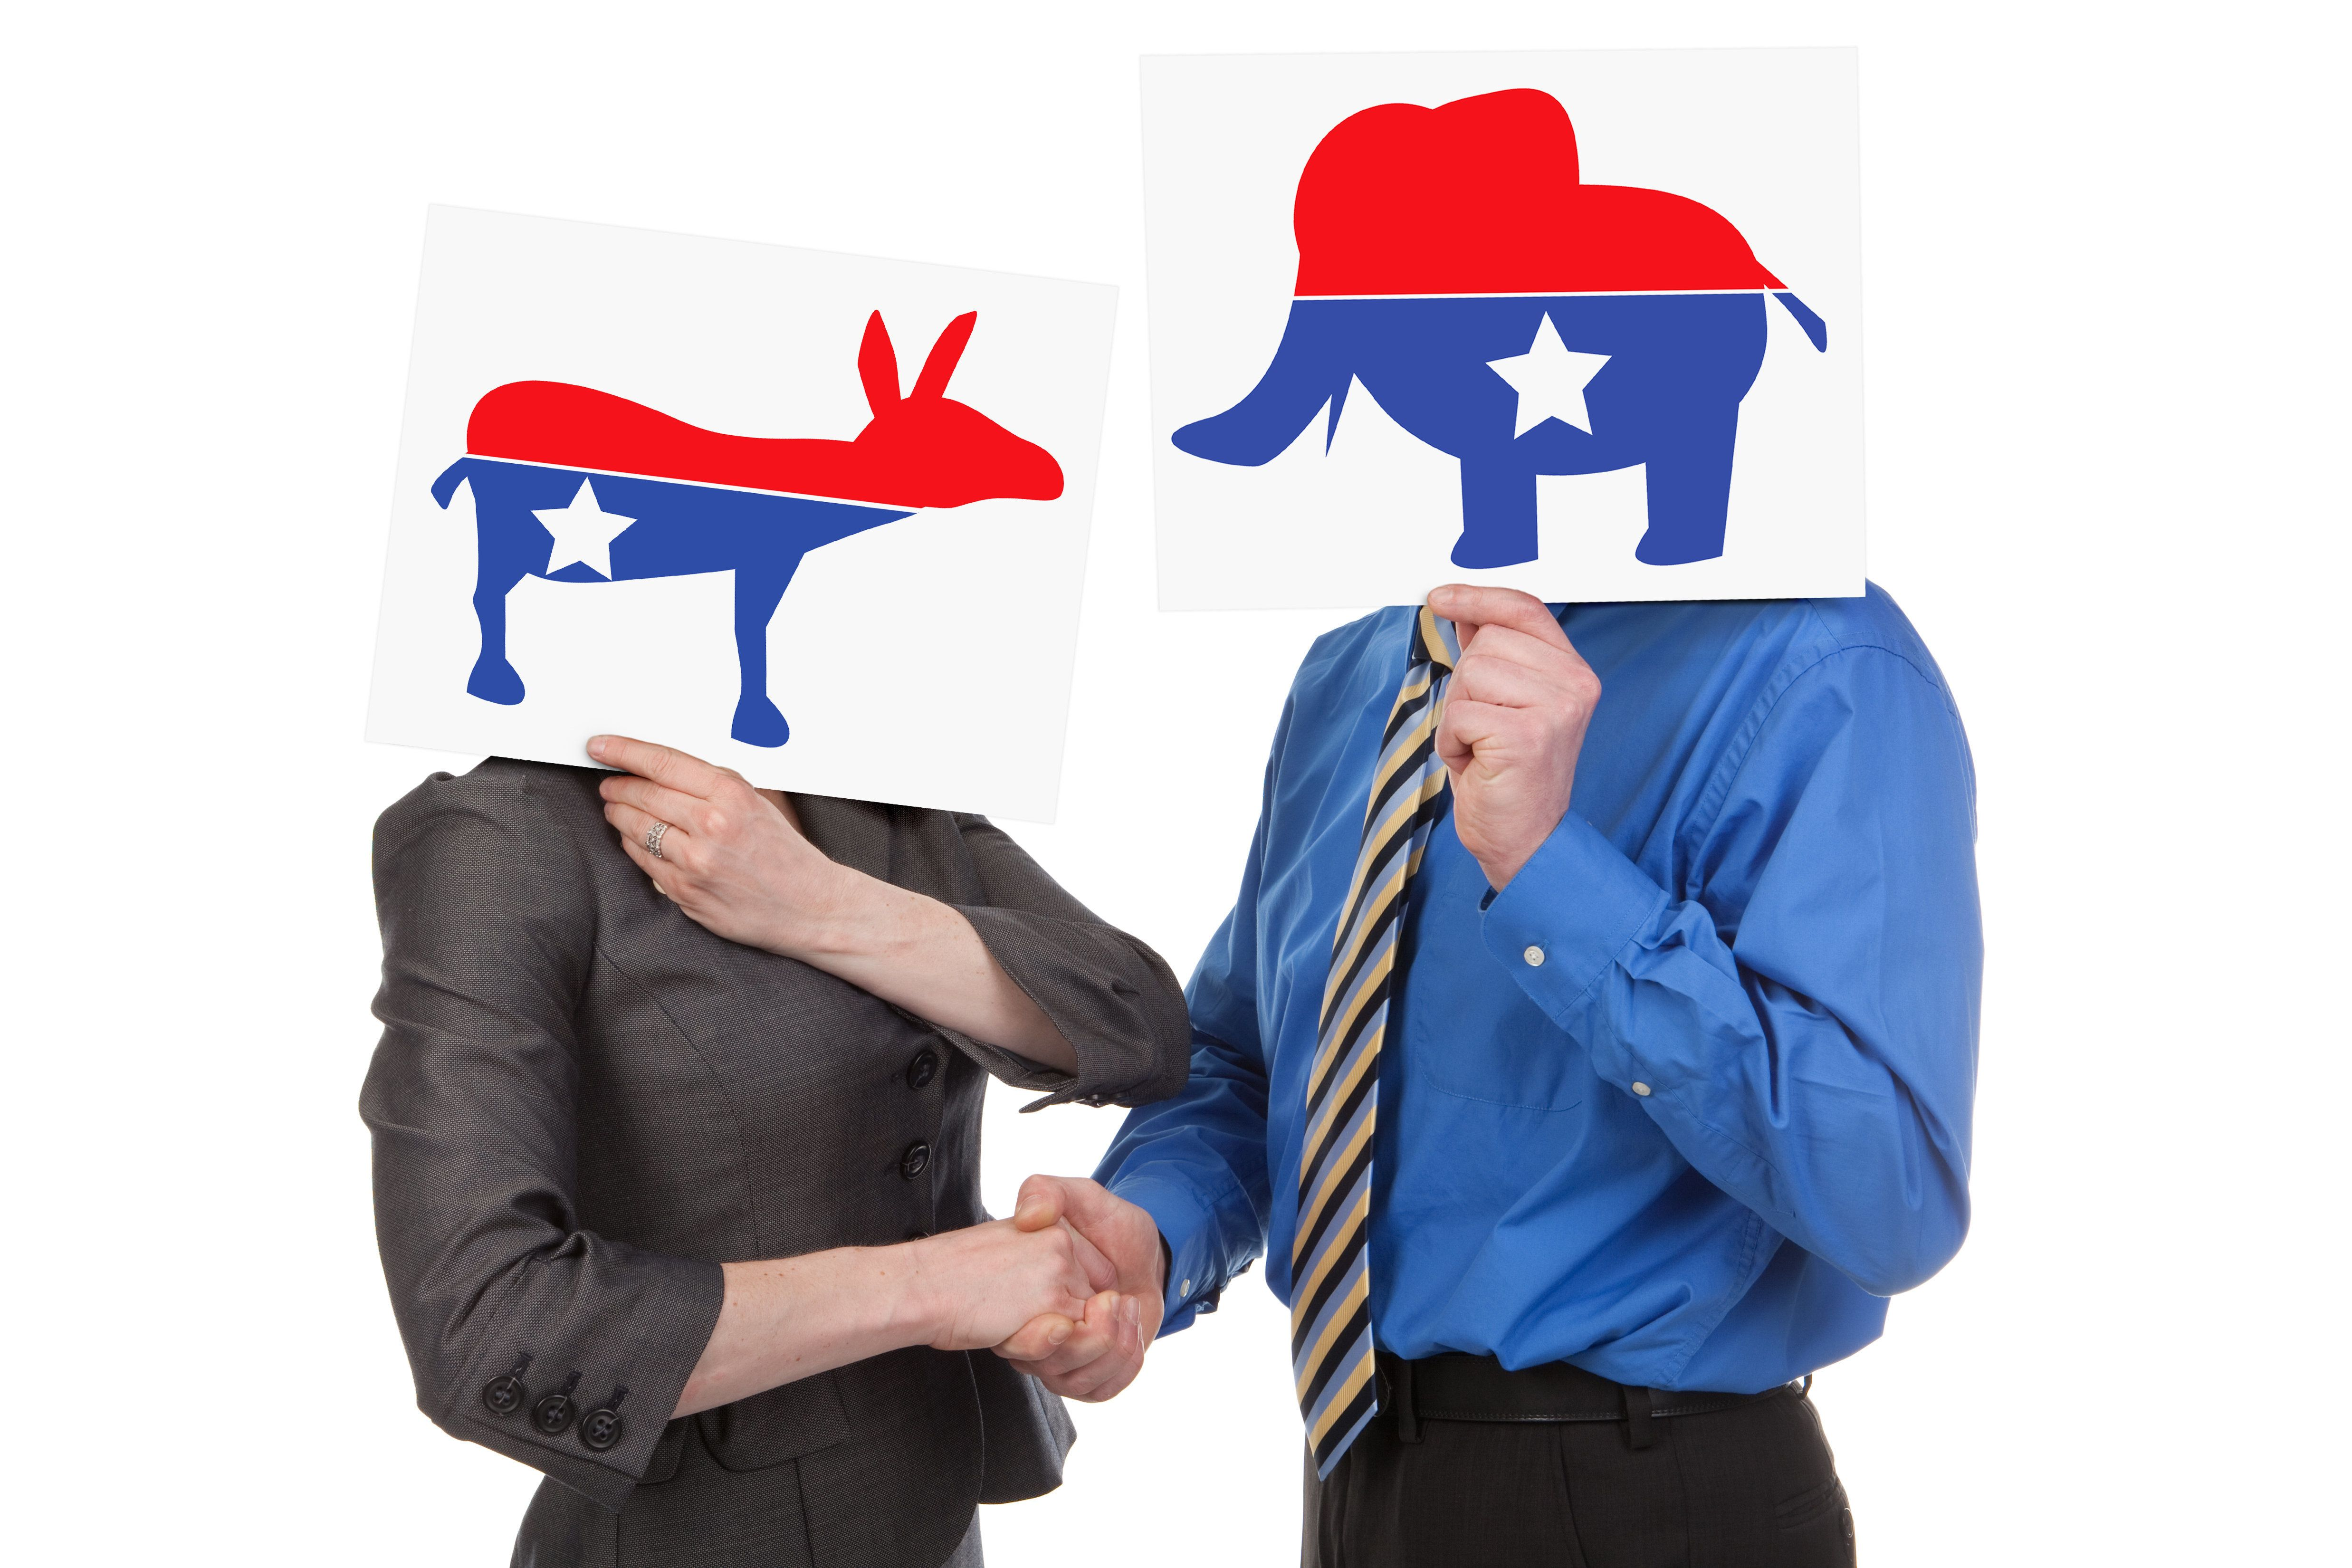 A democrat and republican shaking hands.  Graphics created by photographer.